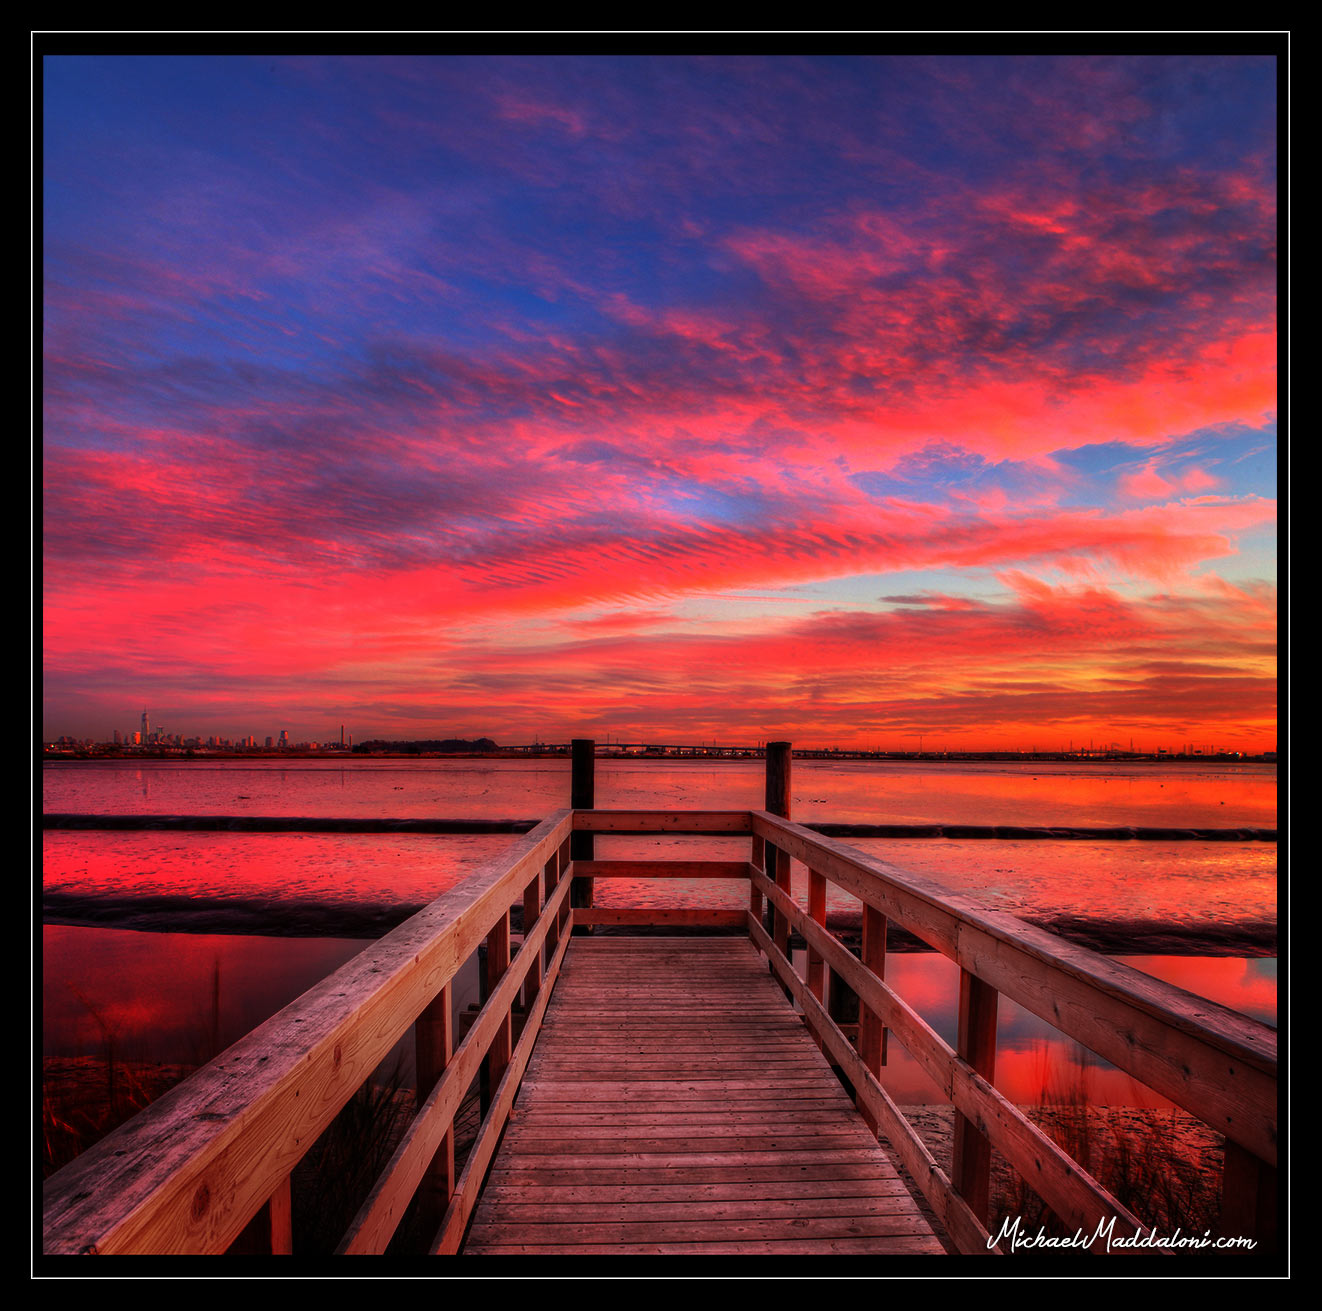 meadowlands_sunset_pier_long_nov_7